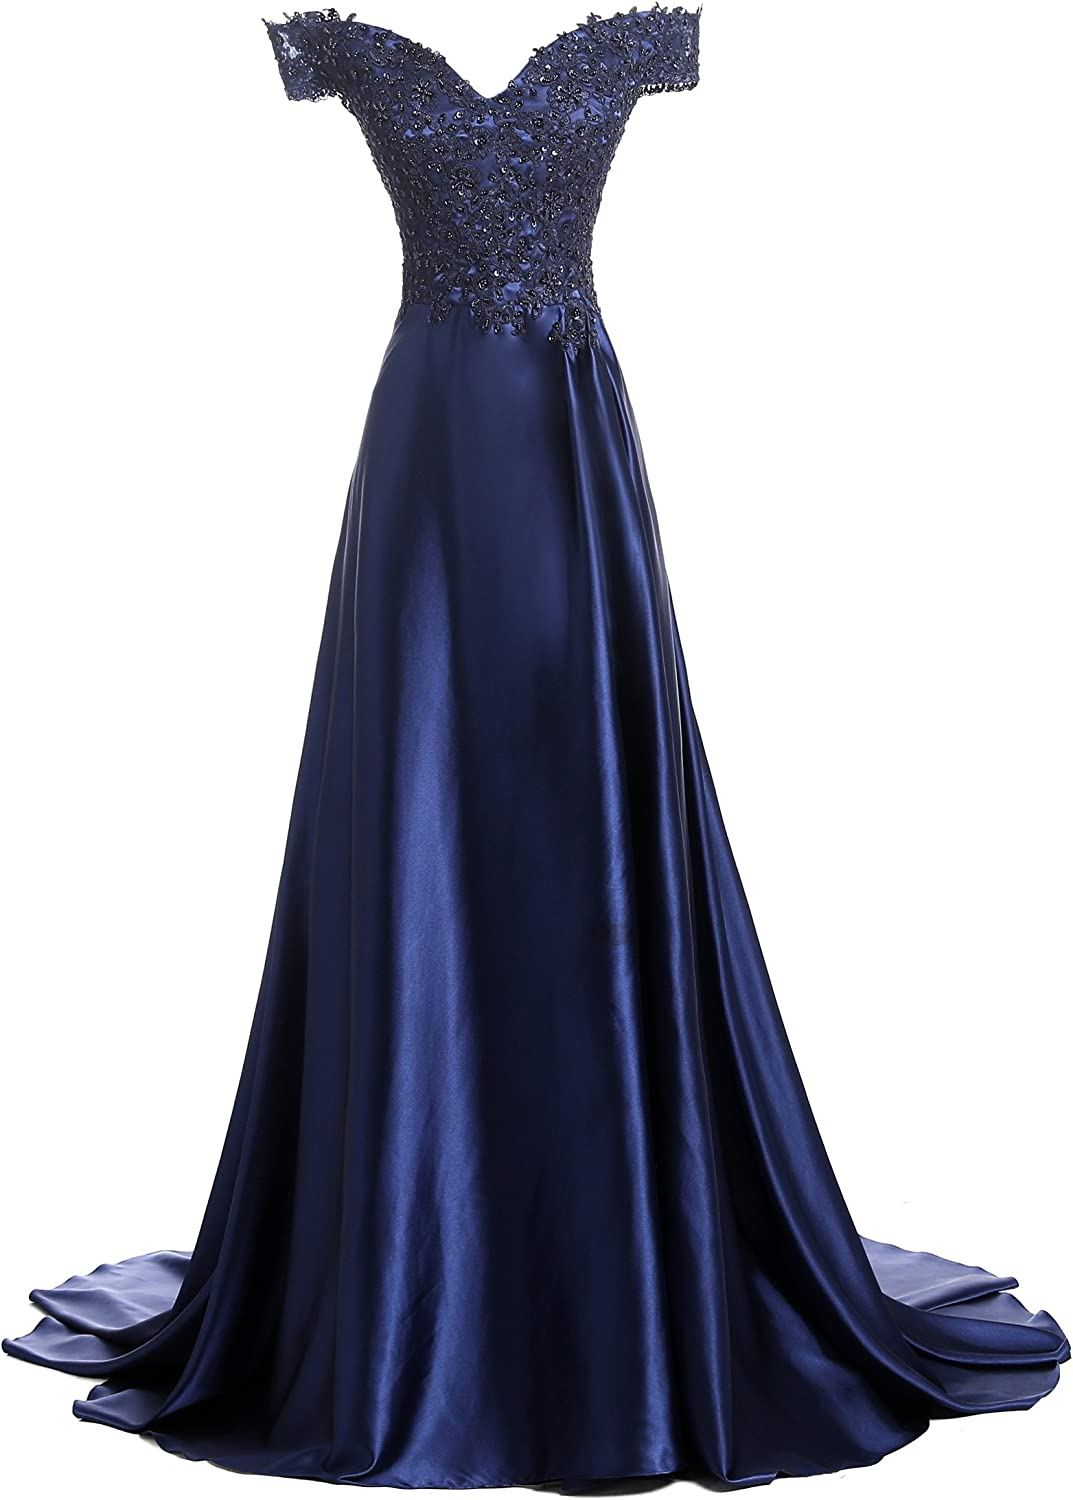 Alexzendra Double V Neck Off The Shoulder Evening Dress Long Prom Gown Navy bluee